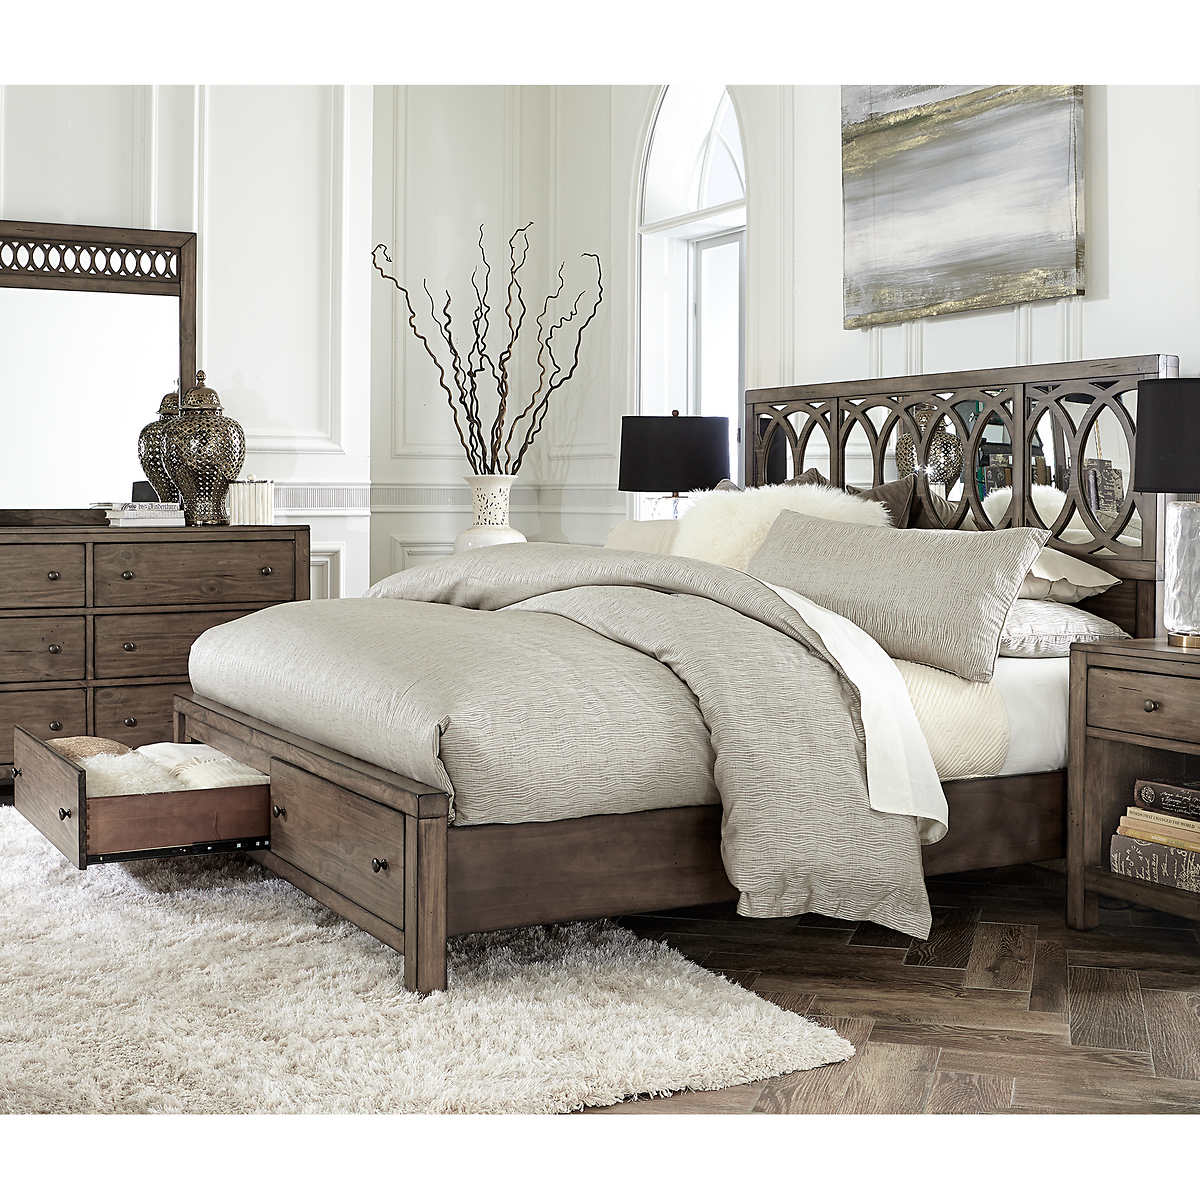 Beverly Mirrored Cal King Bed